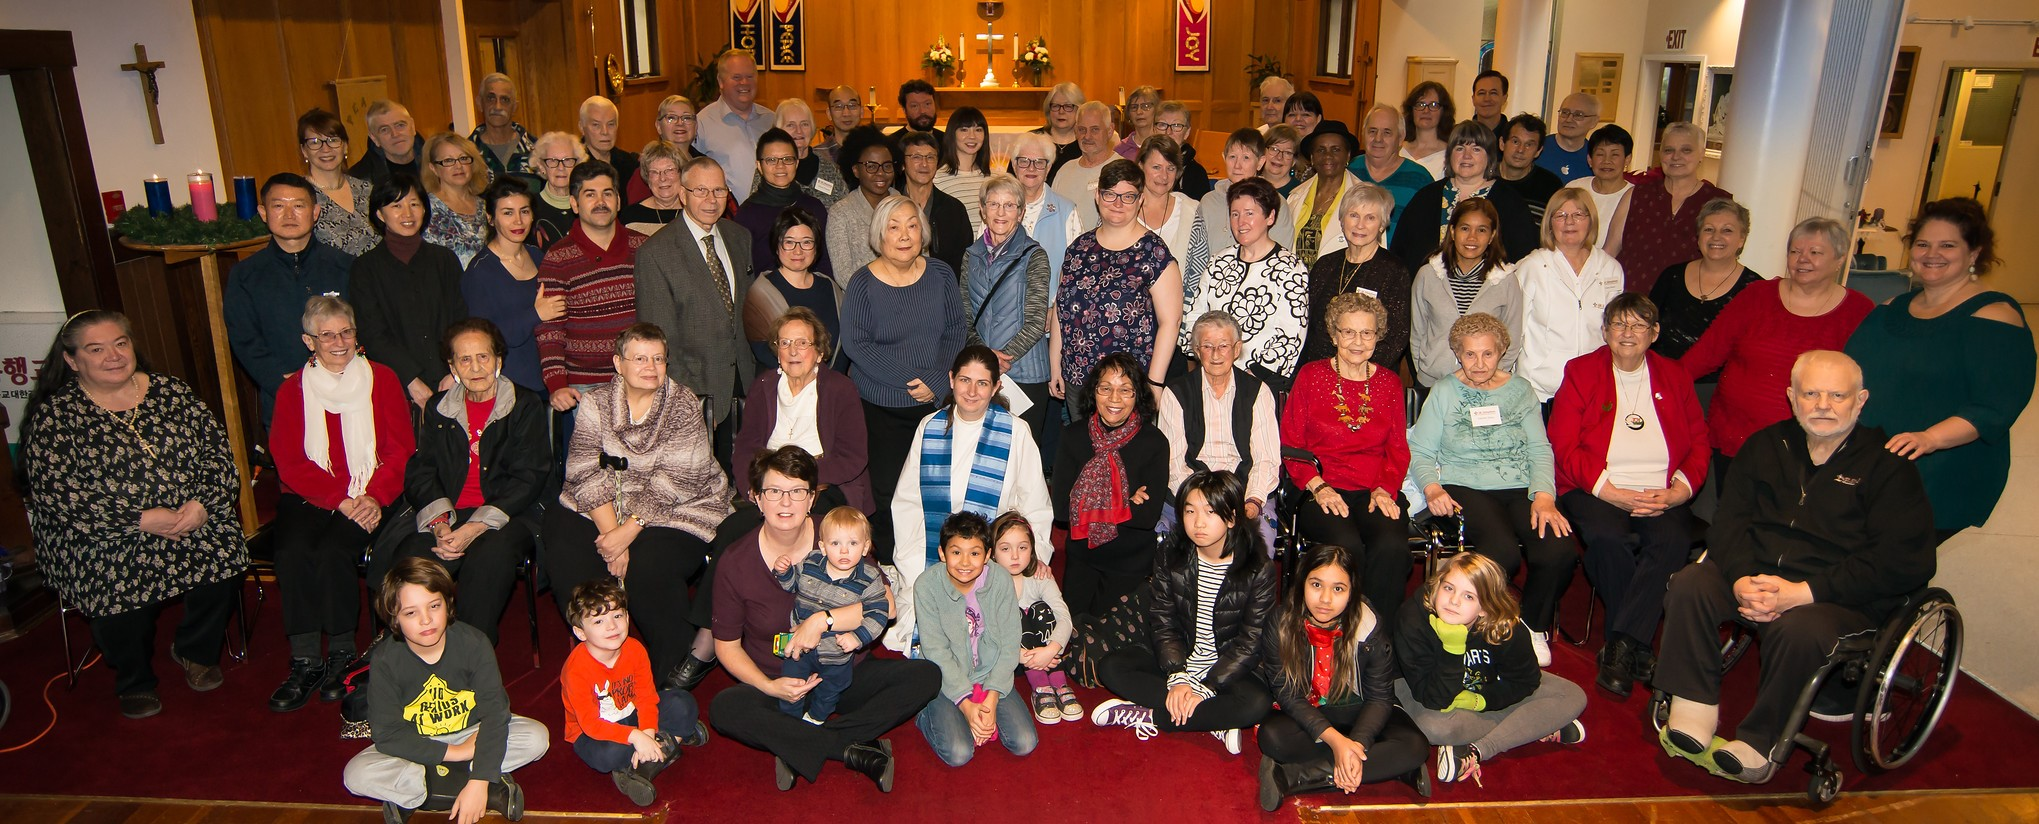 Photo of All Parish Members